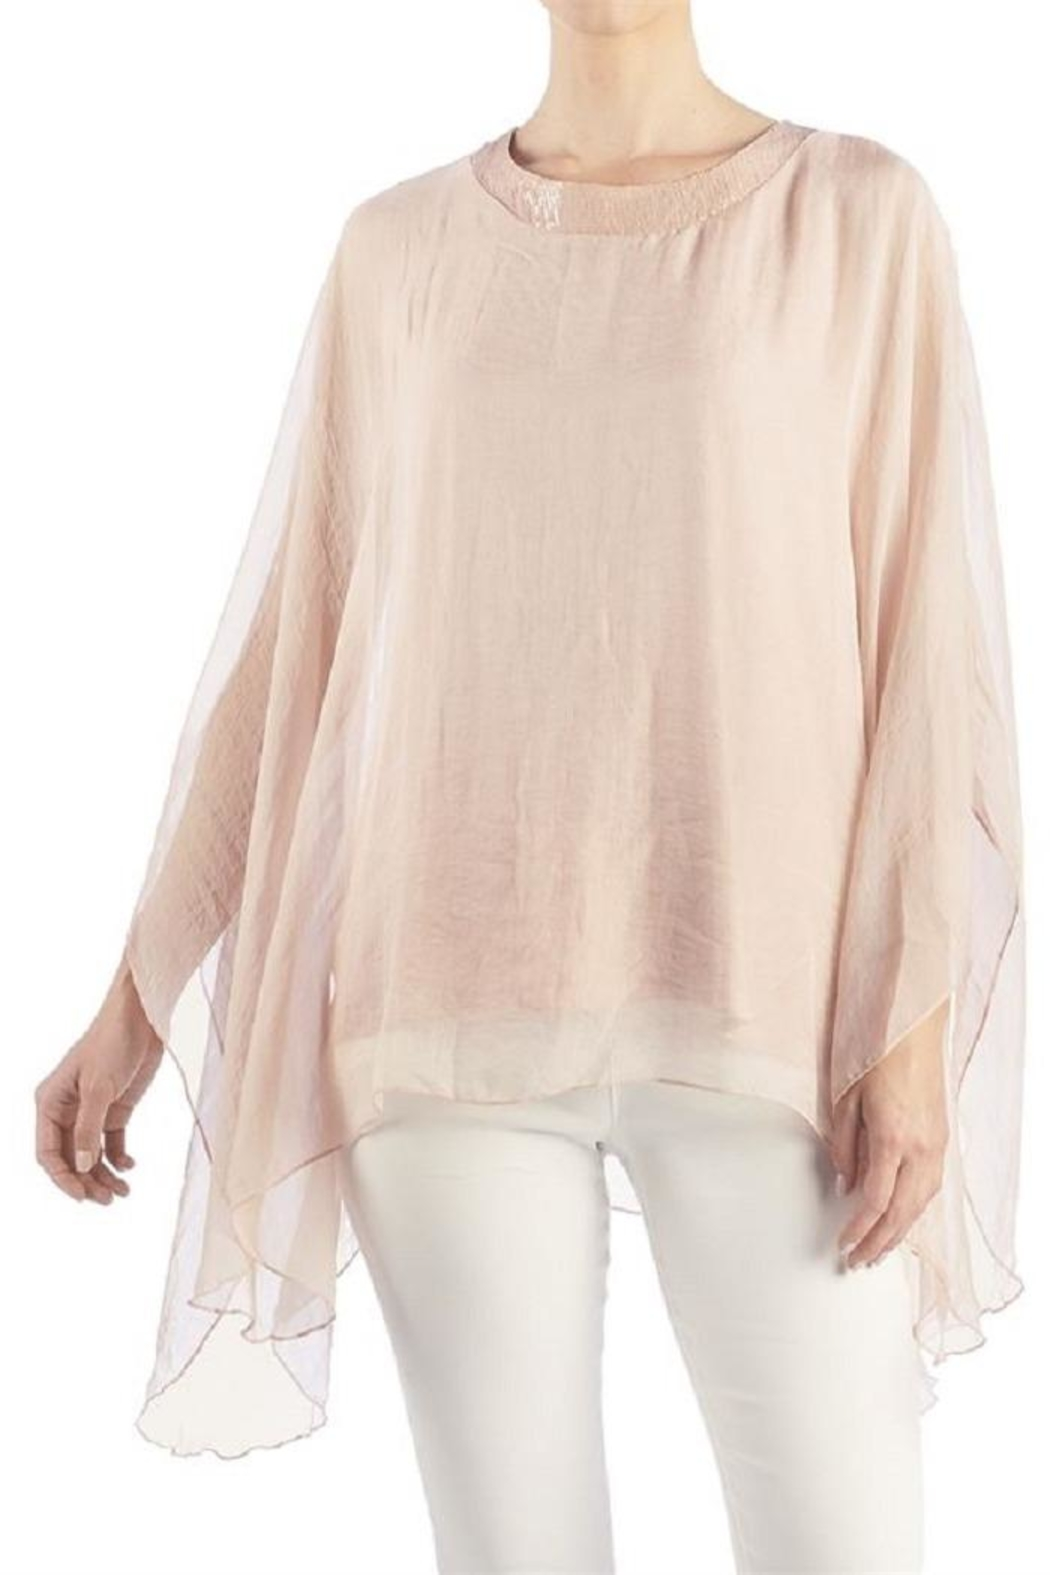 Coco + Carmen Sheer Elegance Crochet Detail Pullover - Front Cropped Image